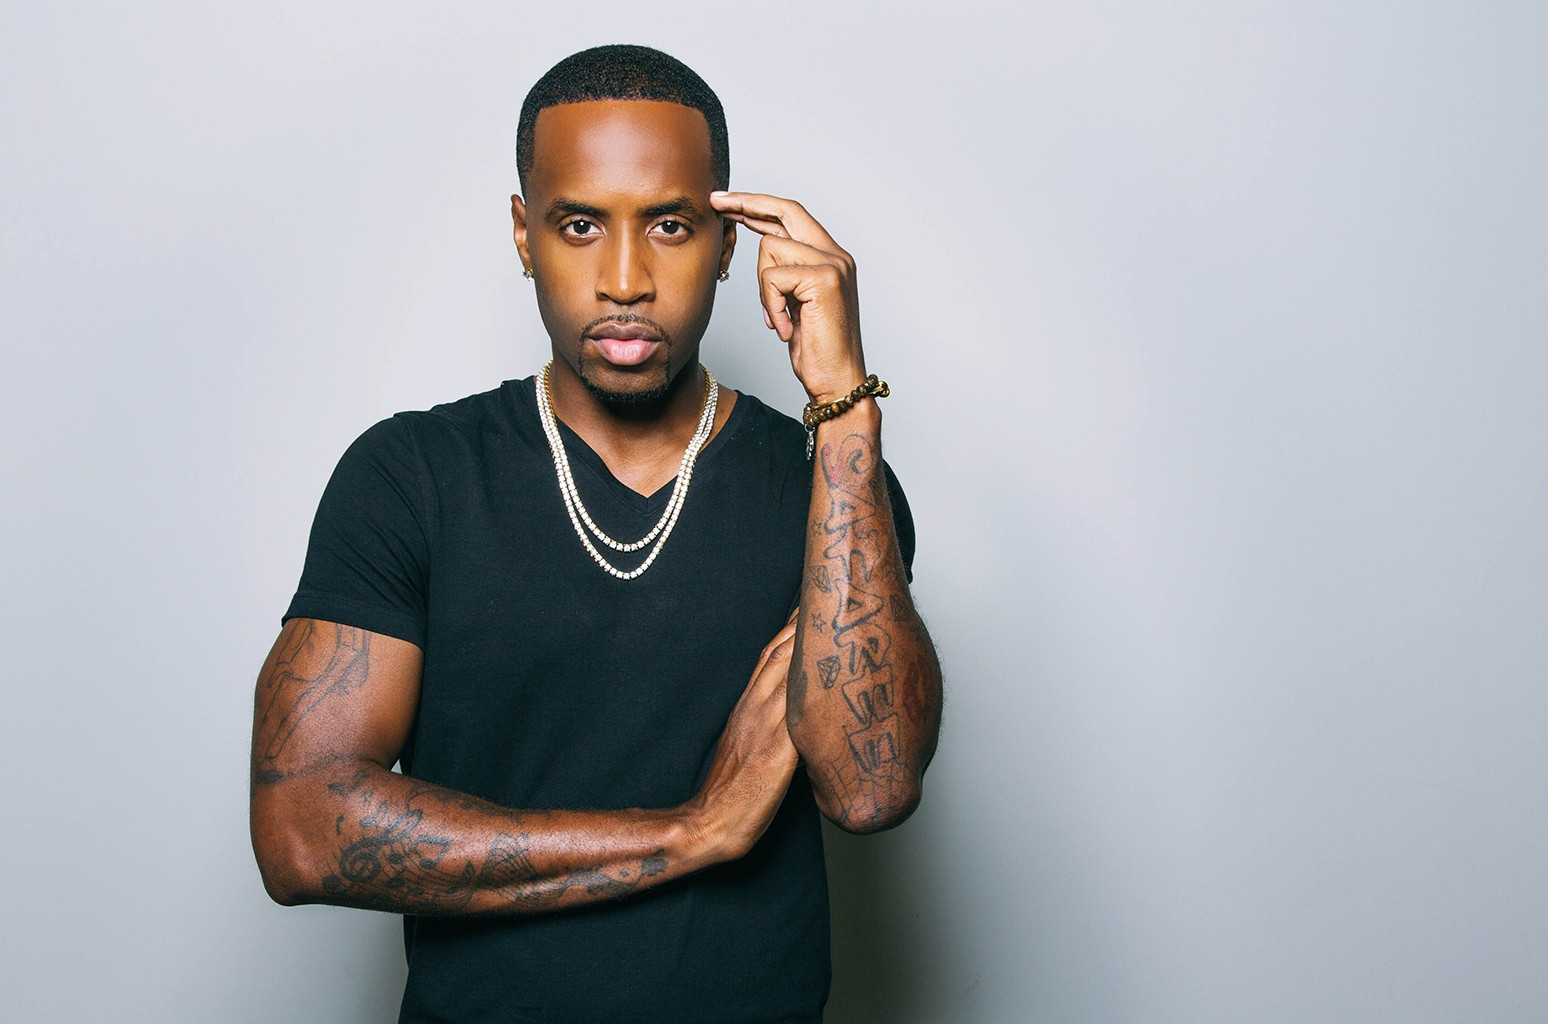 safaree-has-an-important-message-for-his-fans-check-out-what-hes-asking-them